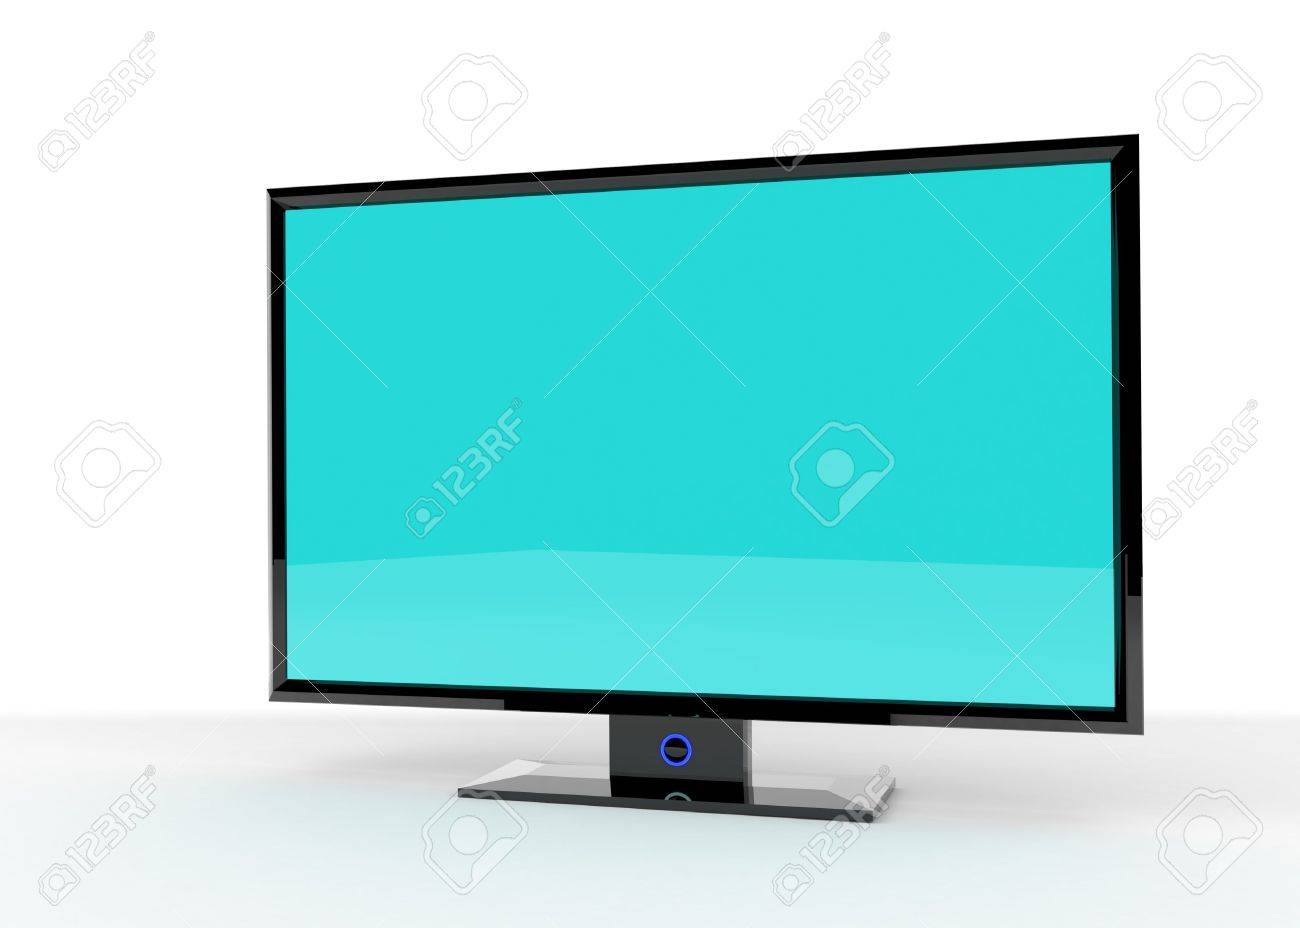 Flat Lcd tv/monitor on white background with light shadows for better depth. Stock Photo - 4824045